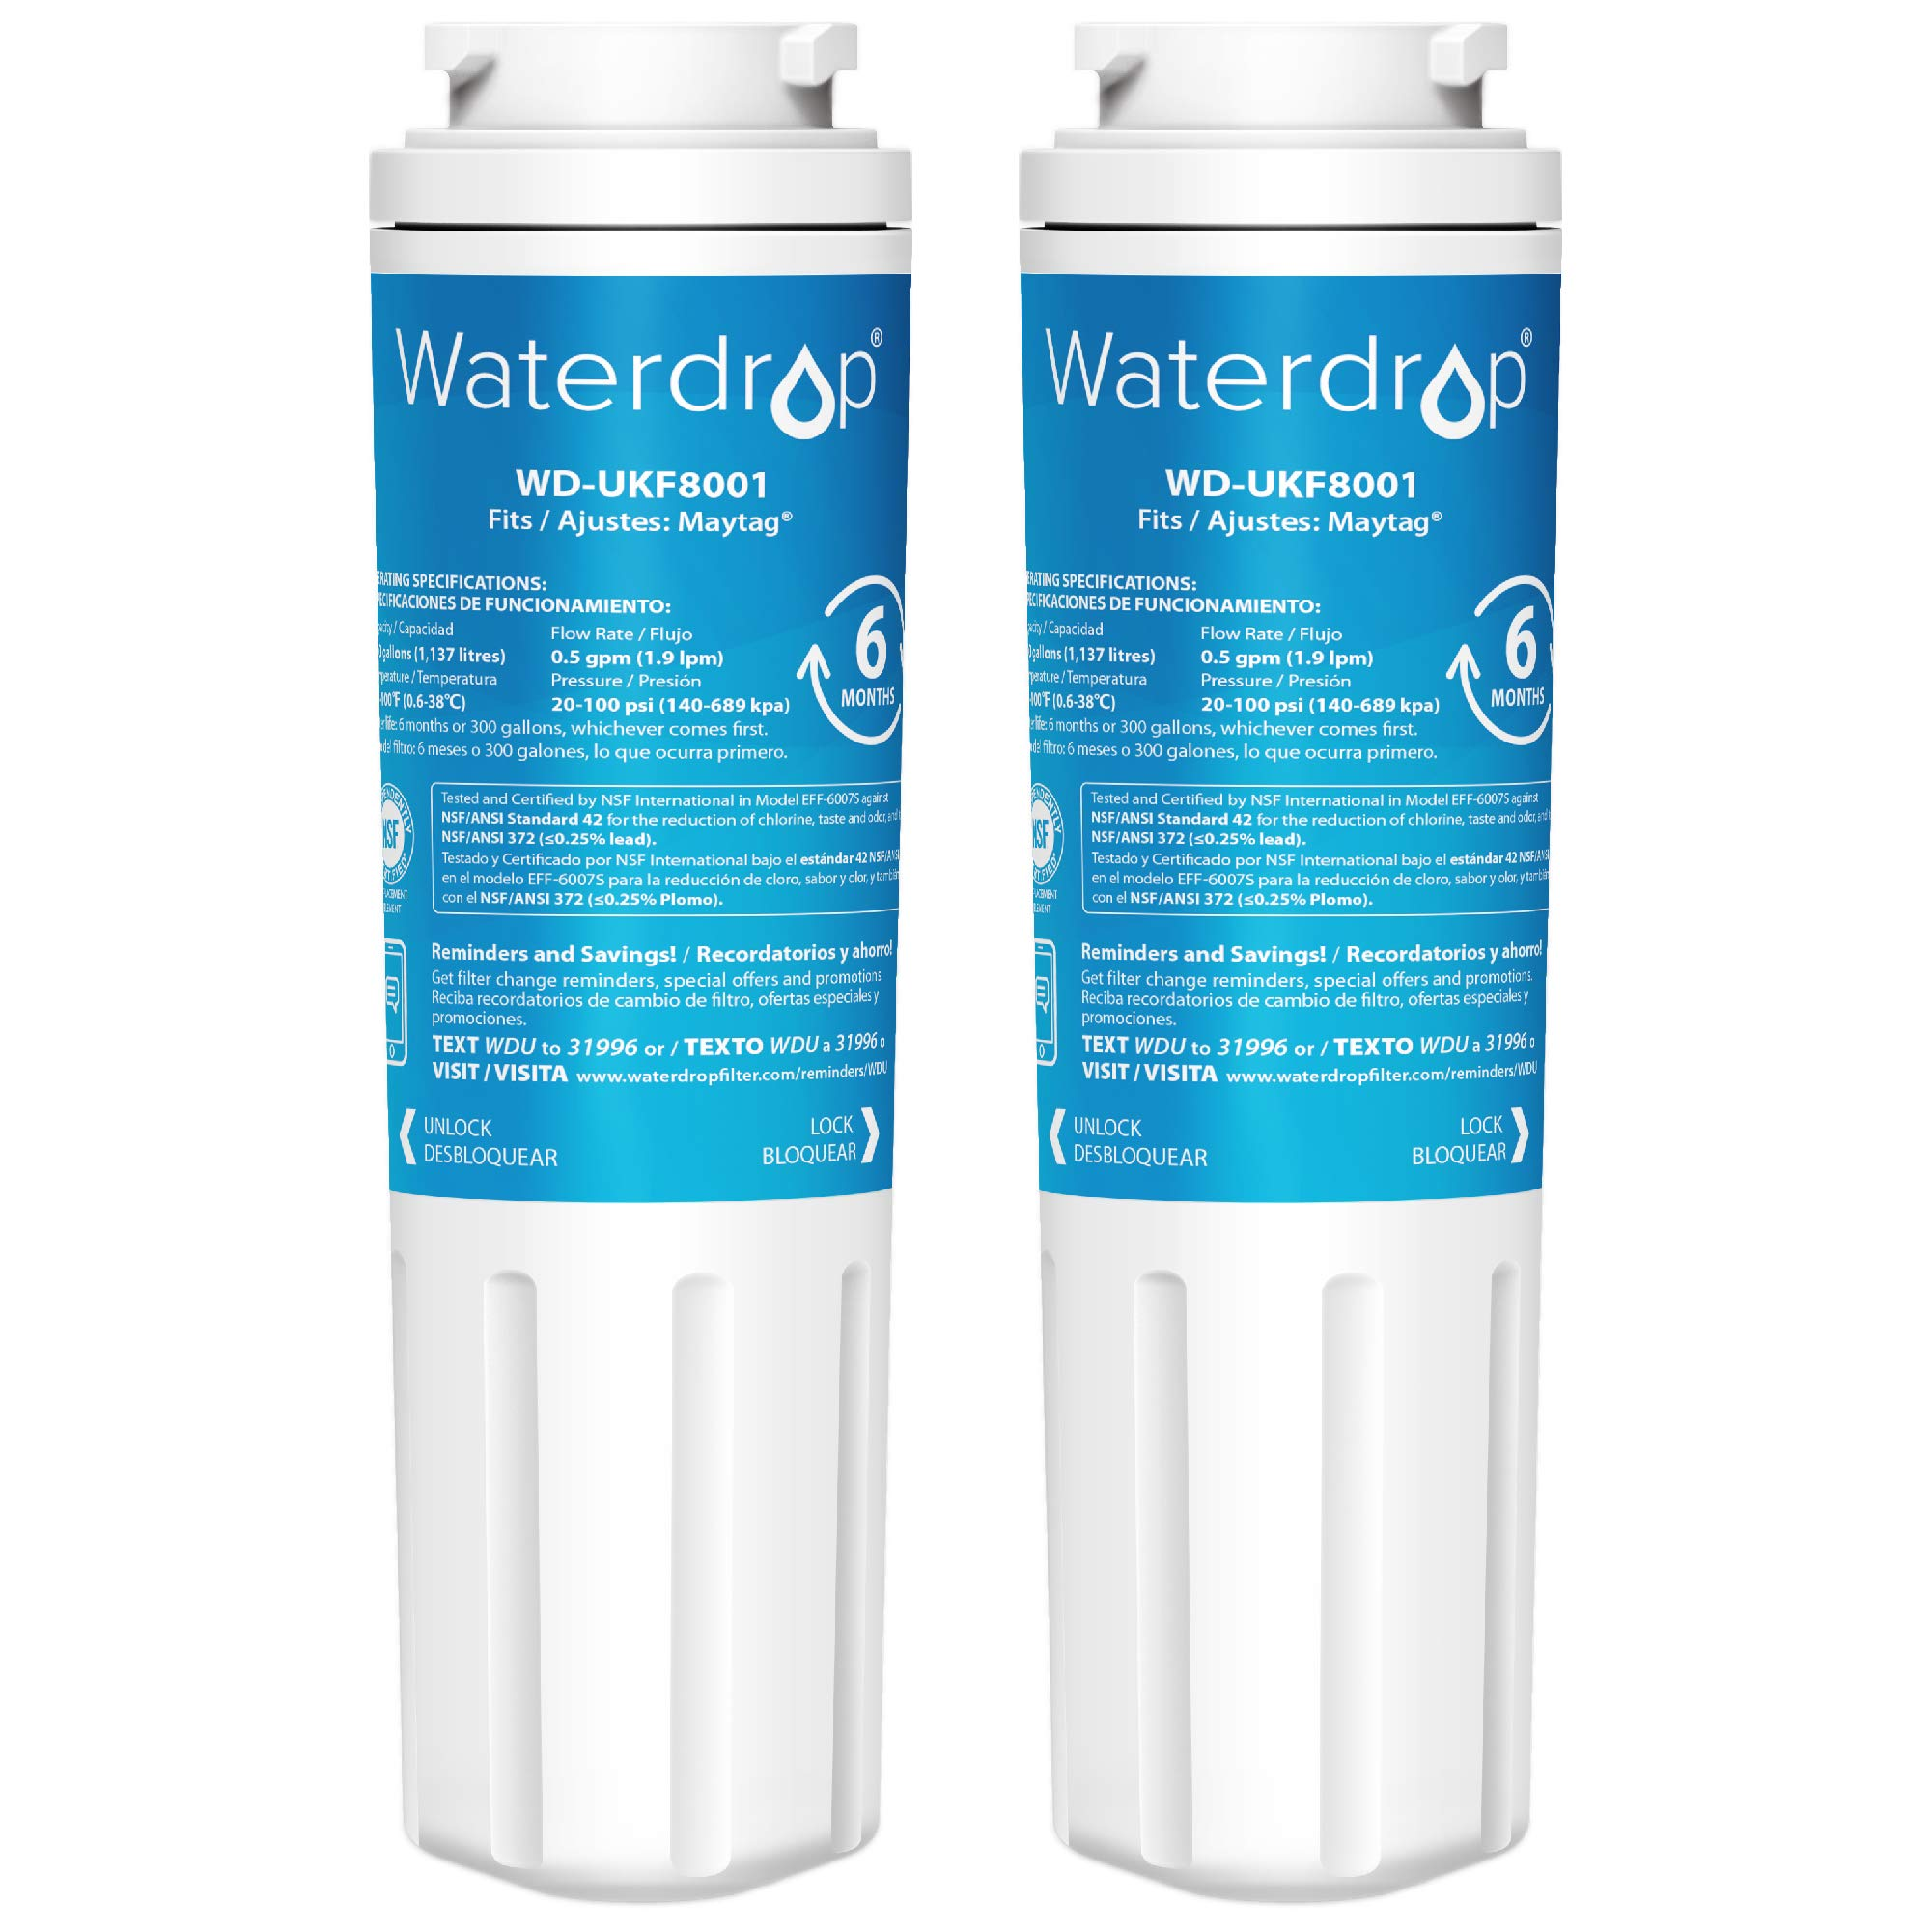 Waterdrop UKF8001 Replacement Refrigerator Water Filter, Compatible with Maytag UKF8001, UKF8001AXX, UKF8001P, Whirlpool 4396395, 469006, EDR4RXD1, EveryDrop Filter 4, Puriclean II, Standard, 2 Pack